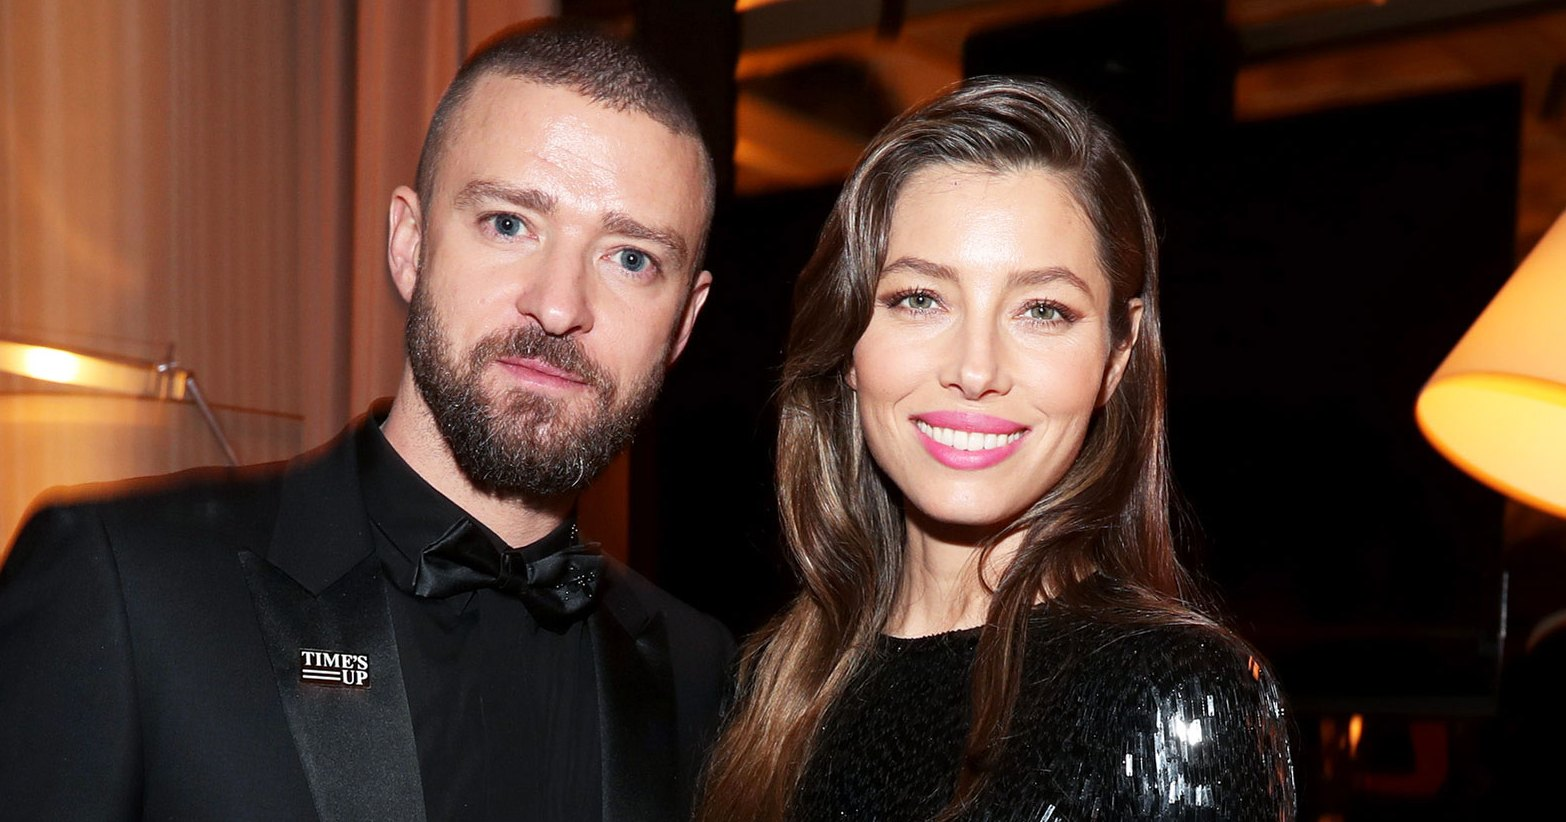 Justin Timberlake and Jessica Biel Surprise Students at LeBron James' School in Ohio